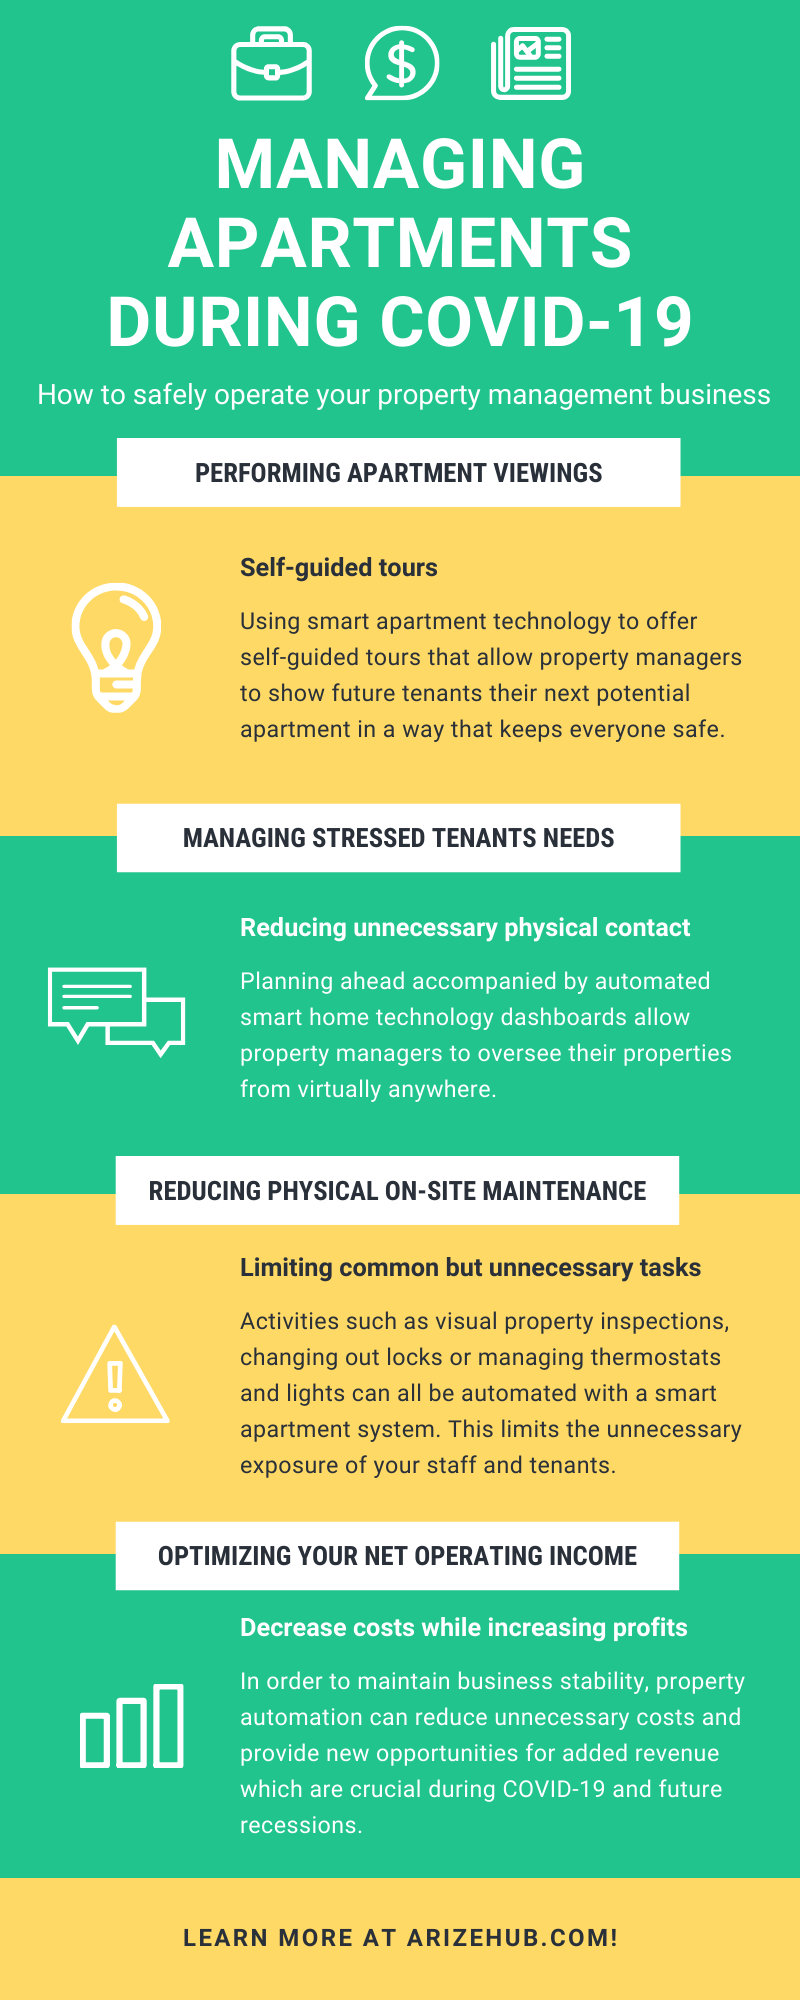 Managing apartments during COVID-19 or coronavirus step by step guide